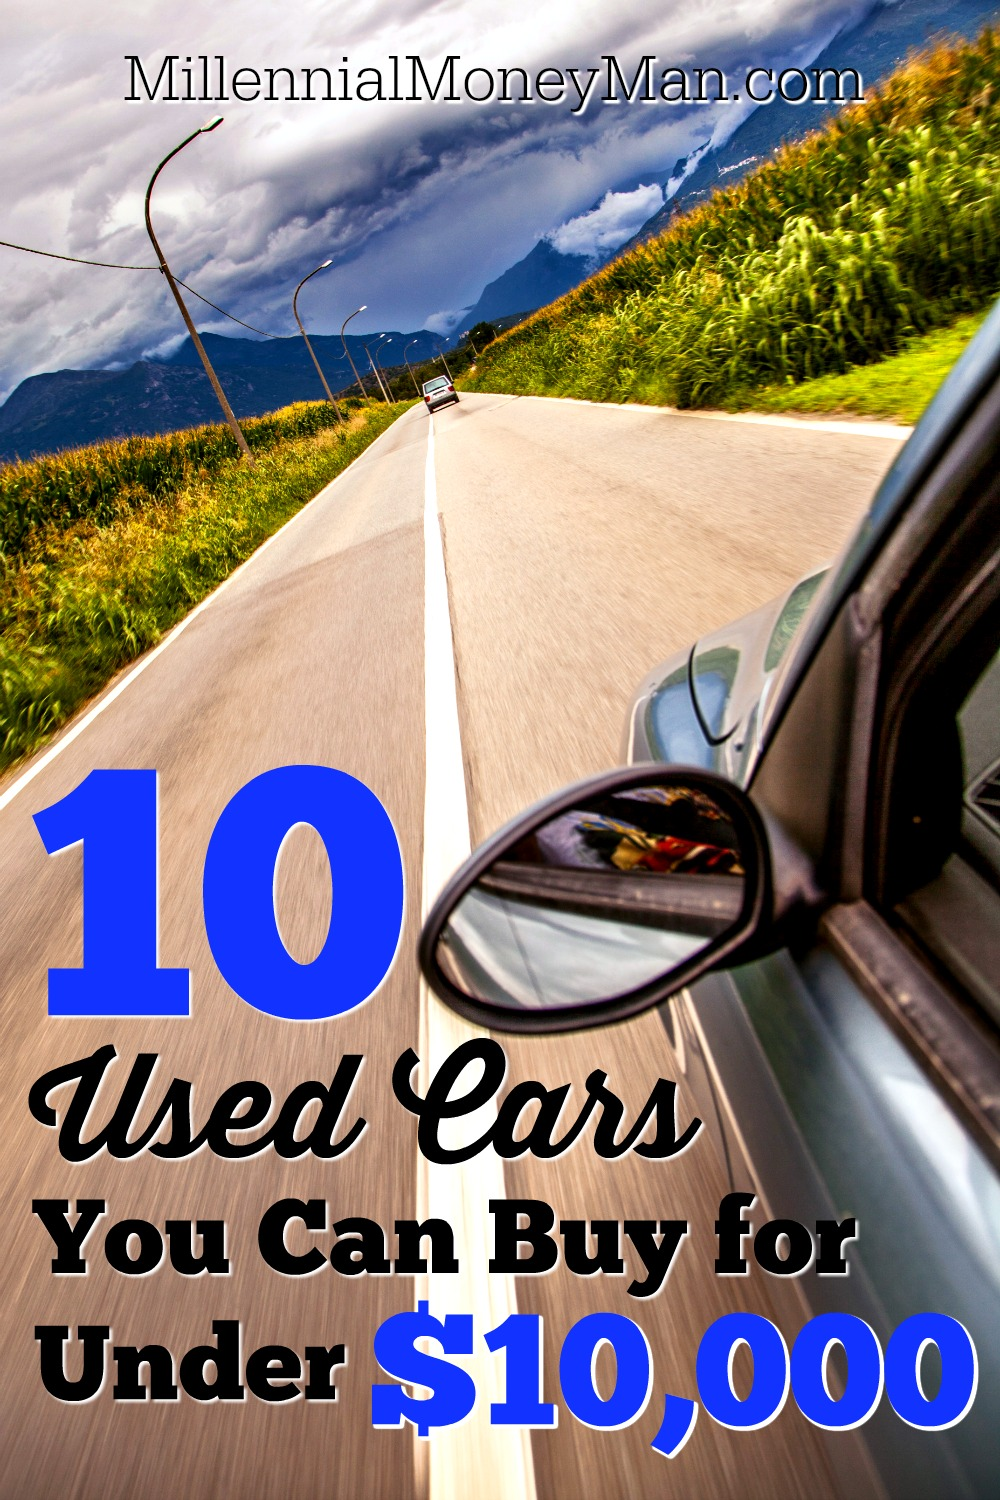 10-used-cars-for-under-10000-blue